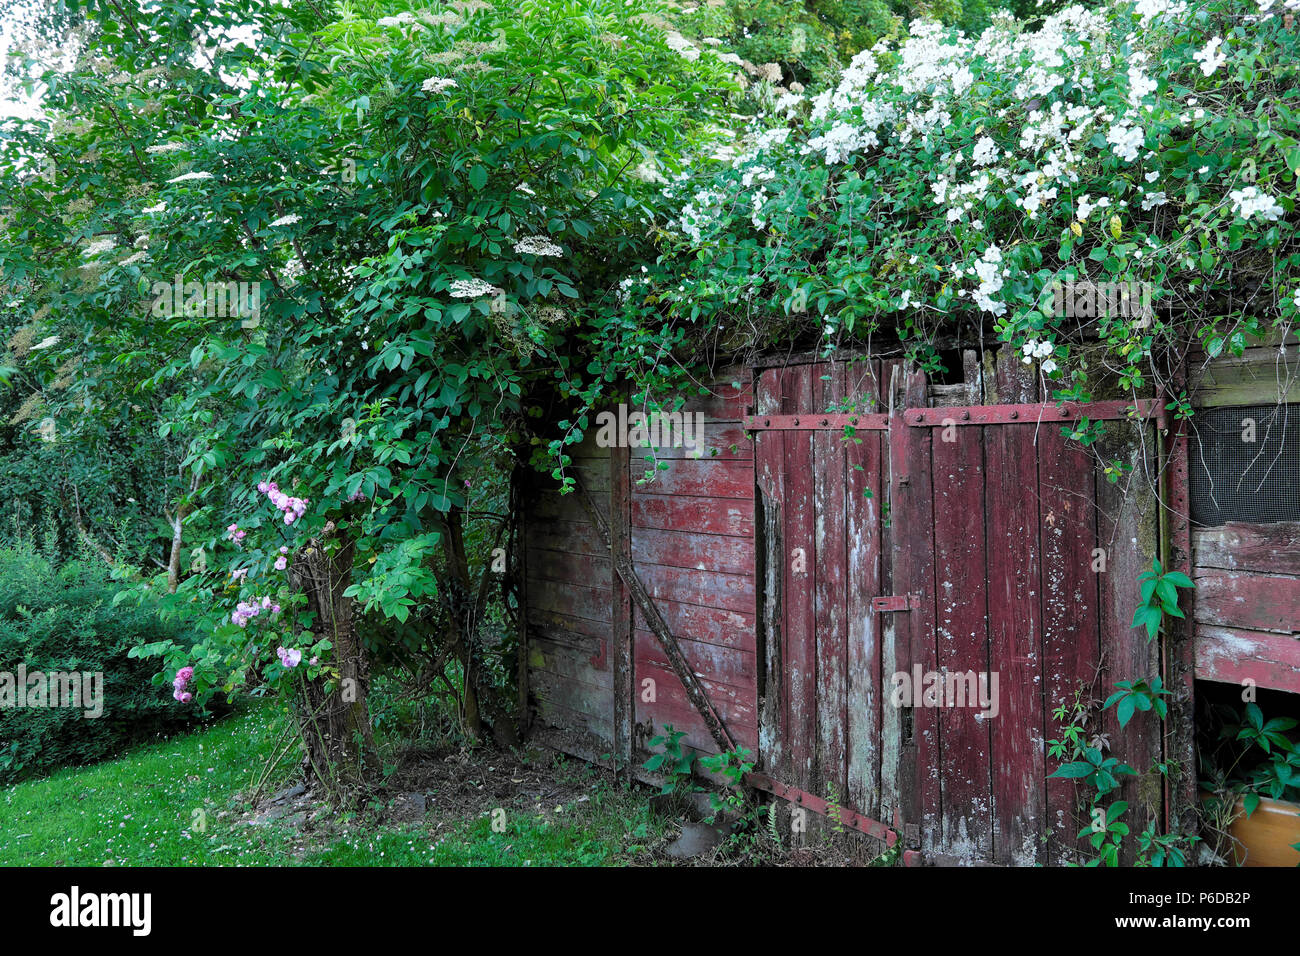 Rosa filipes Kiftsgate white rose rambling over an old railway carriage shed in rural garden in Carmarthenshire Dyfed West Wales UK   KATHY DEWITT - Stock Image